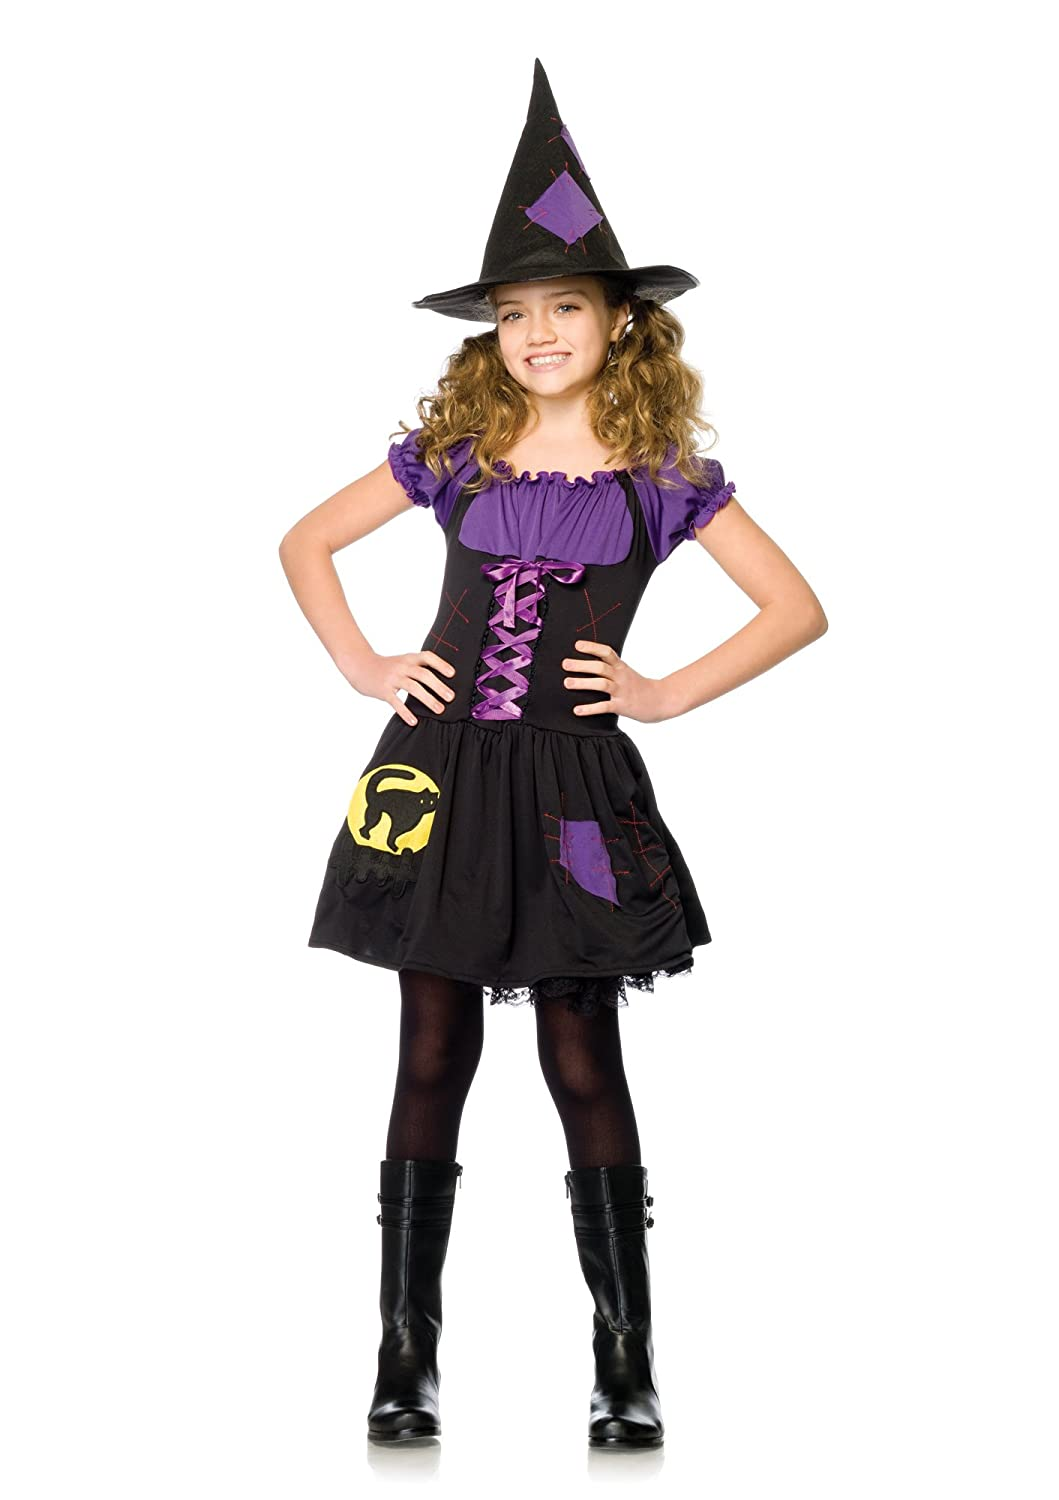 Amazon.com: Black Cat Witch Child's Costume - Large: Toys & Games